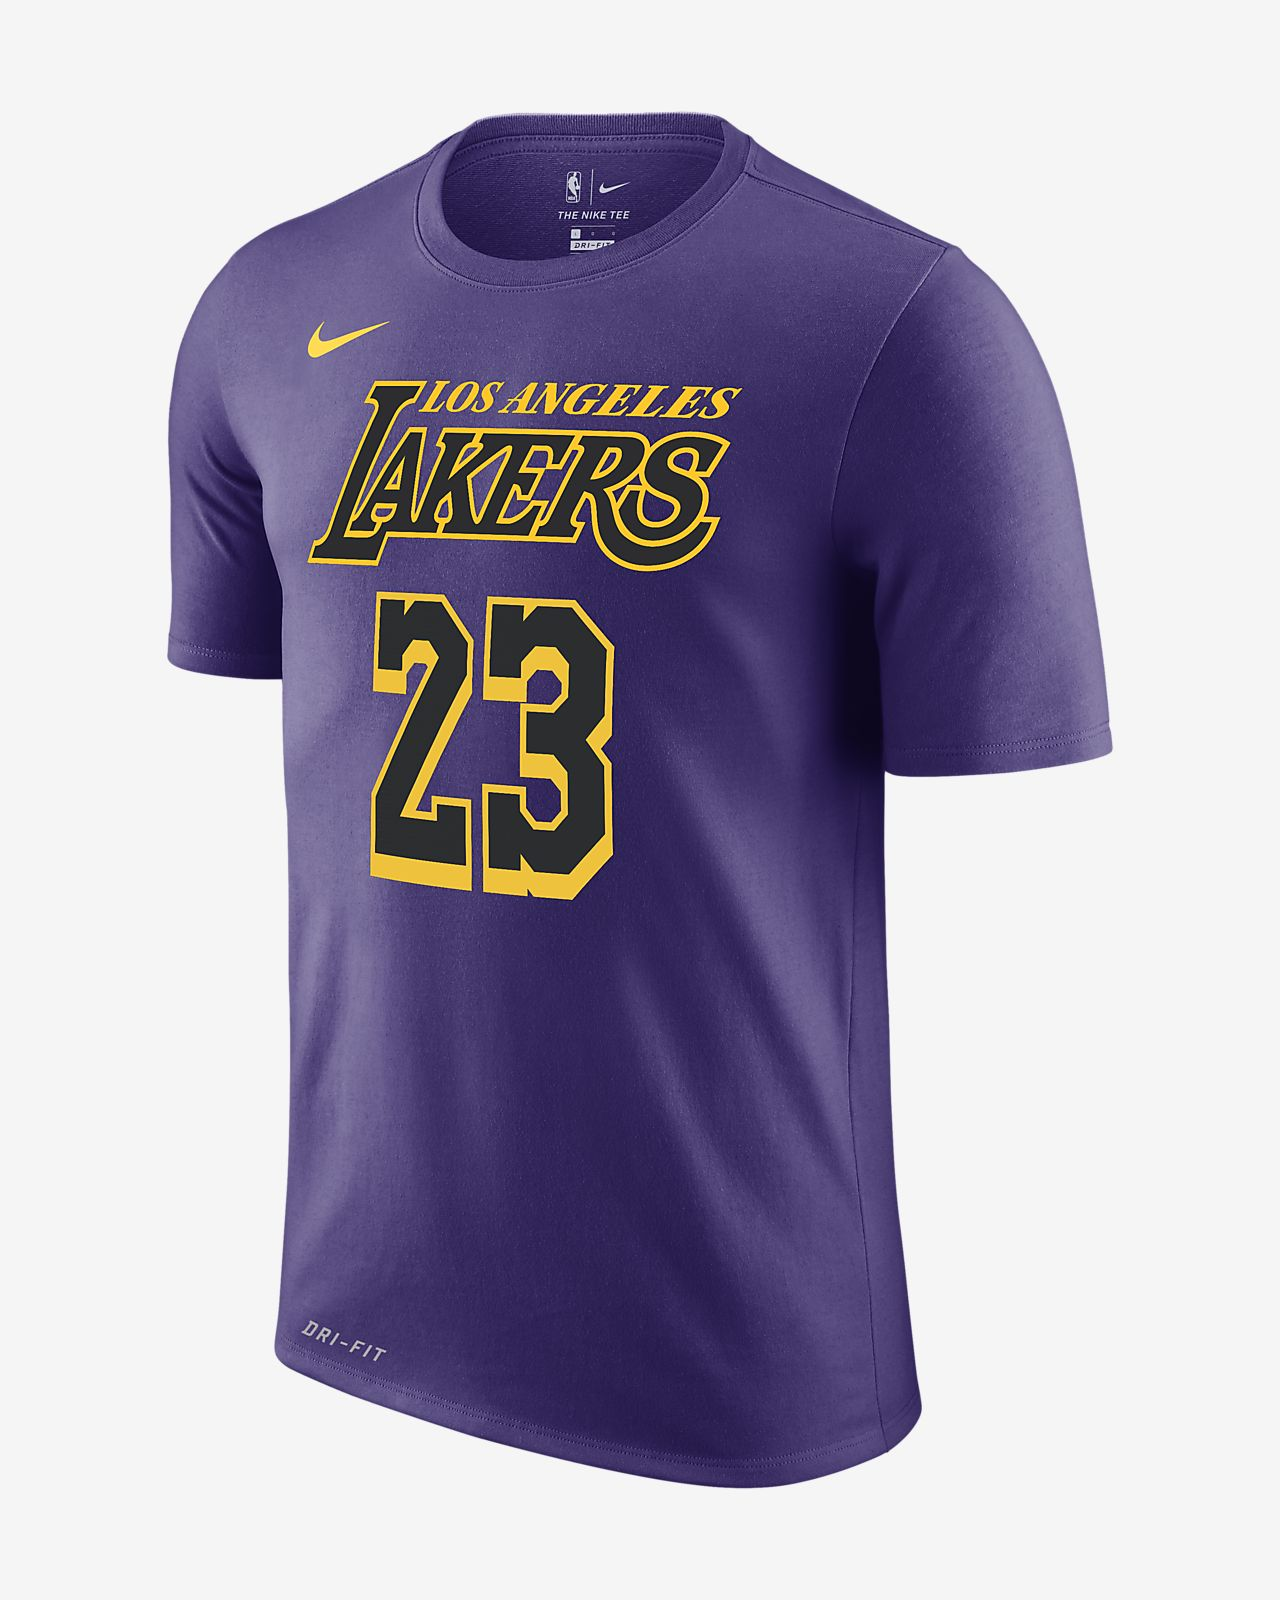 e53c77556 Men s NBA T-Shirt. LeBron James Los Angeles Lakers City Edition Nike Dri-FIT